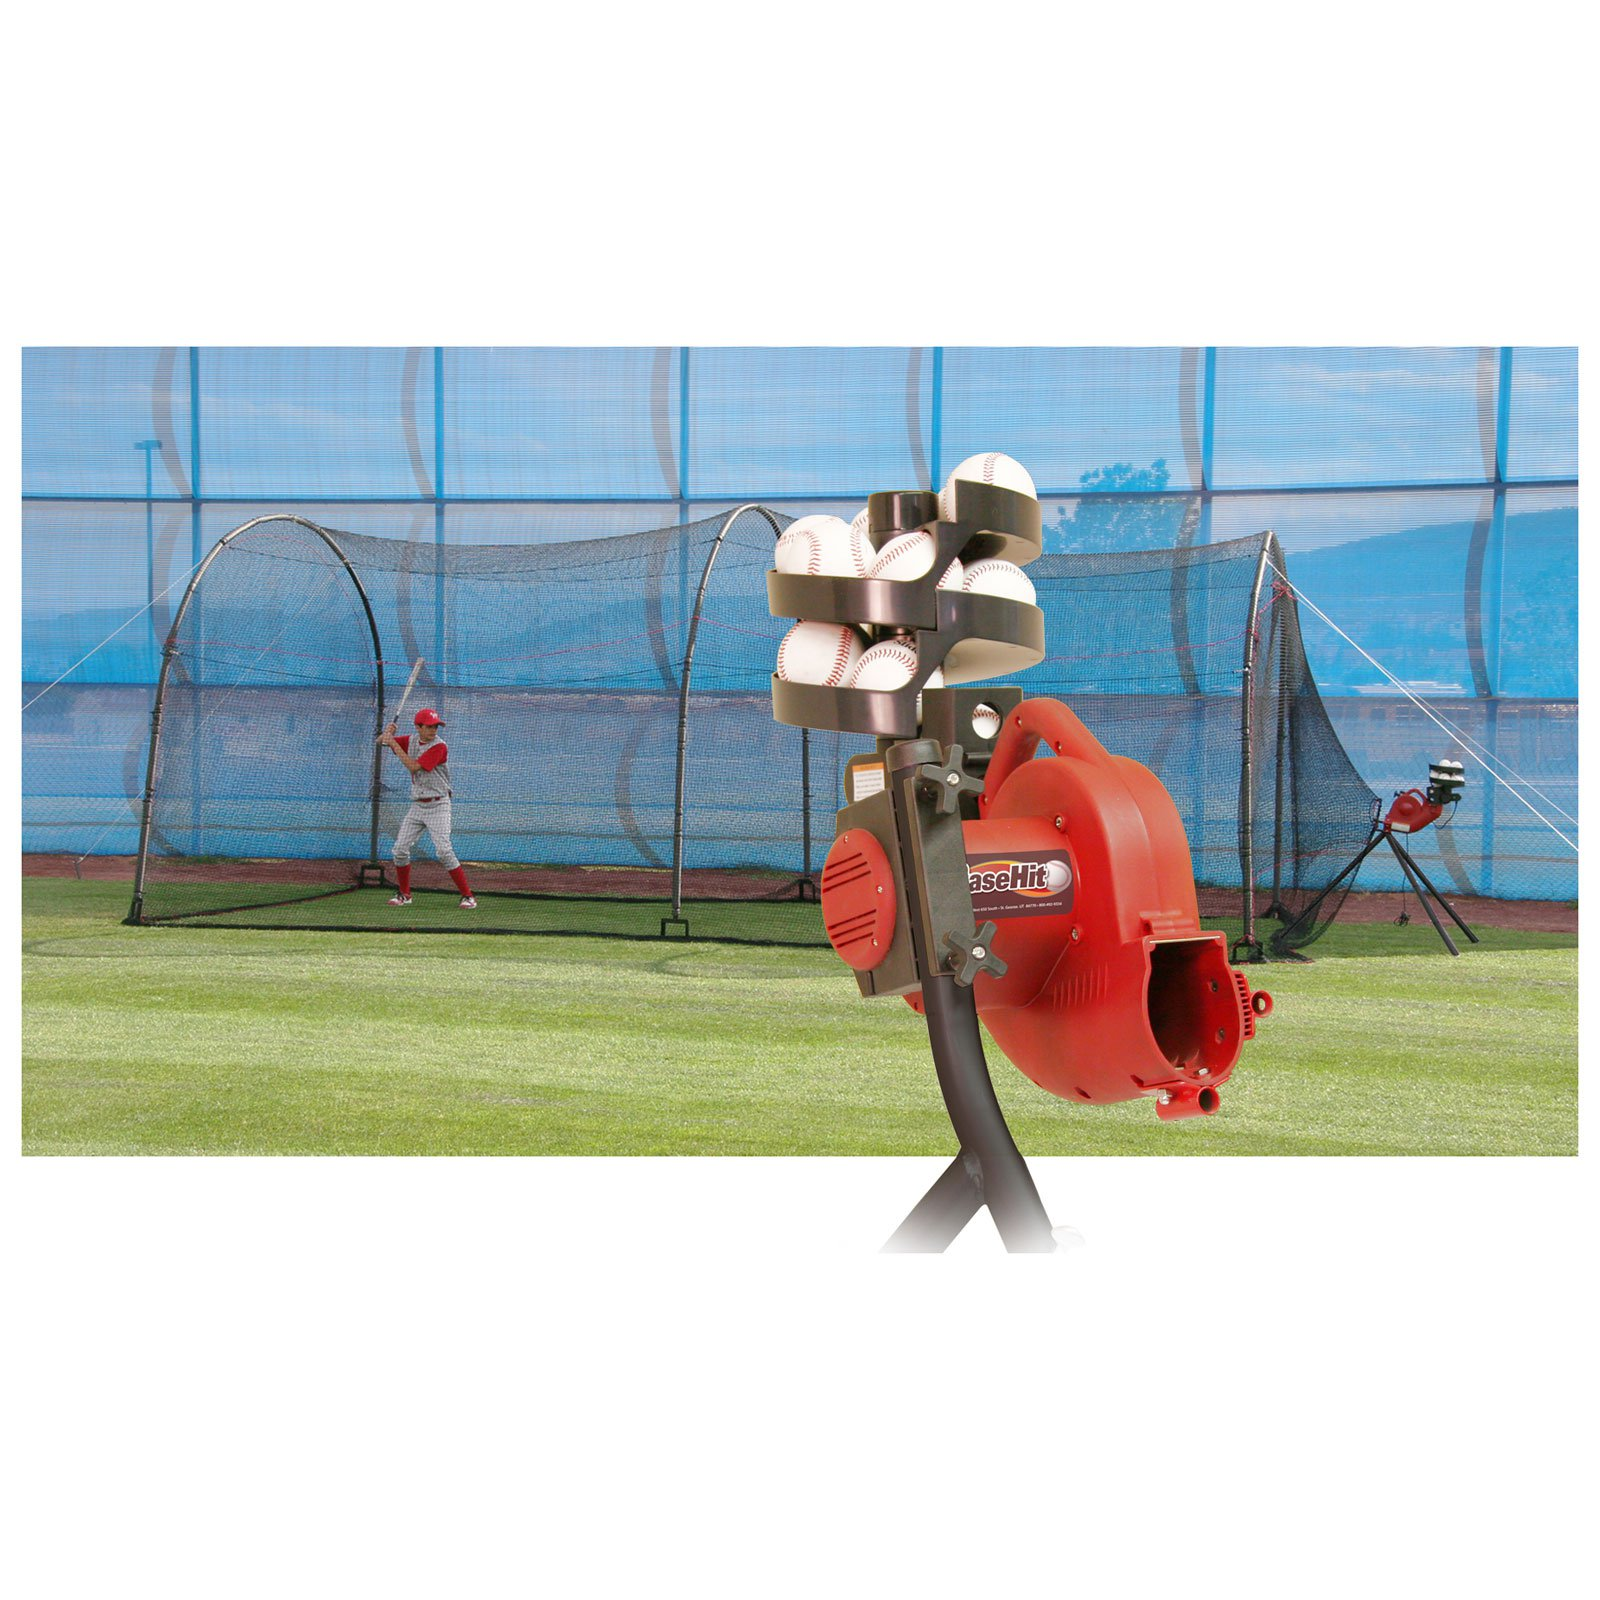 Heater Sports 24 ft. BaseHit Pitching Machine & Xtender Batting Cage Package